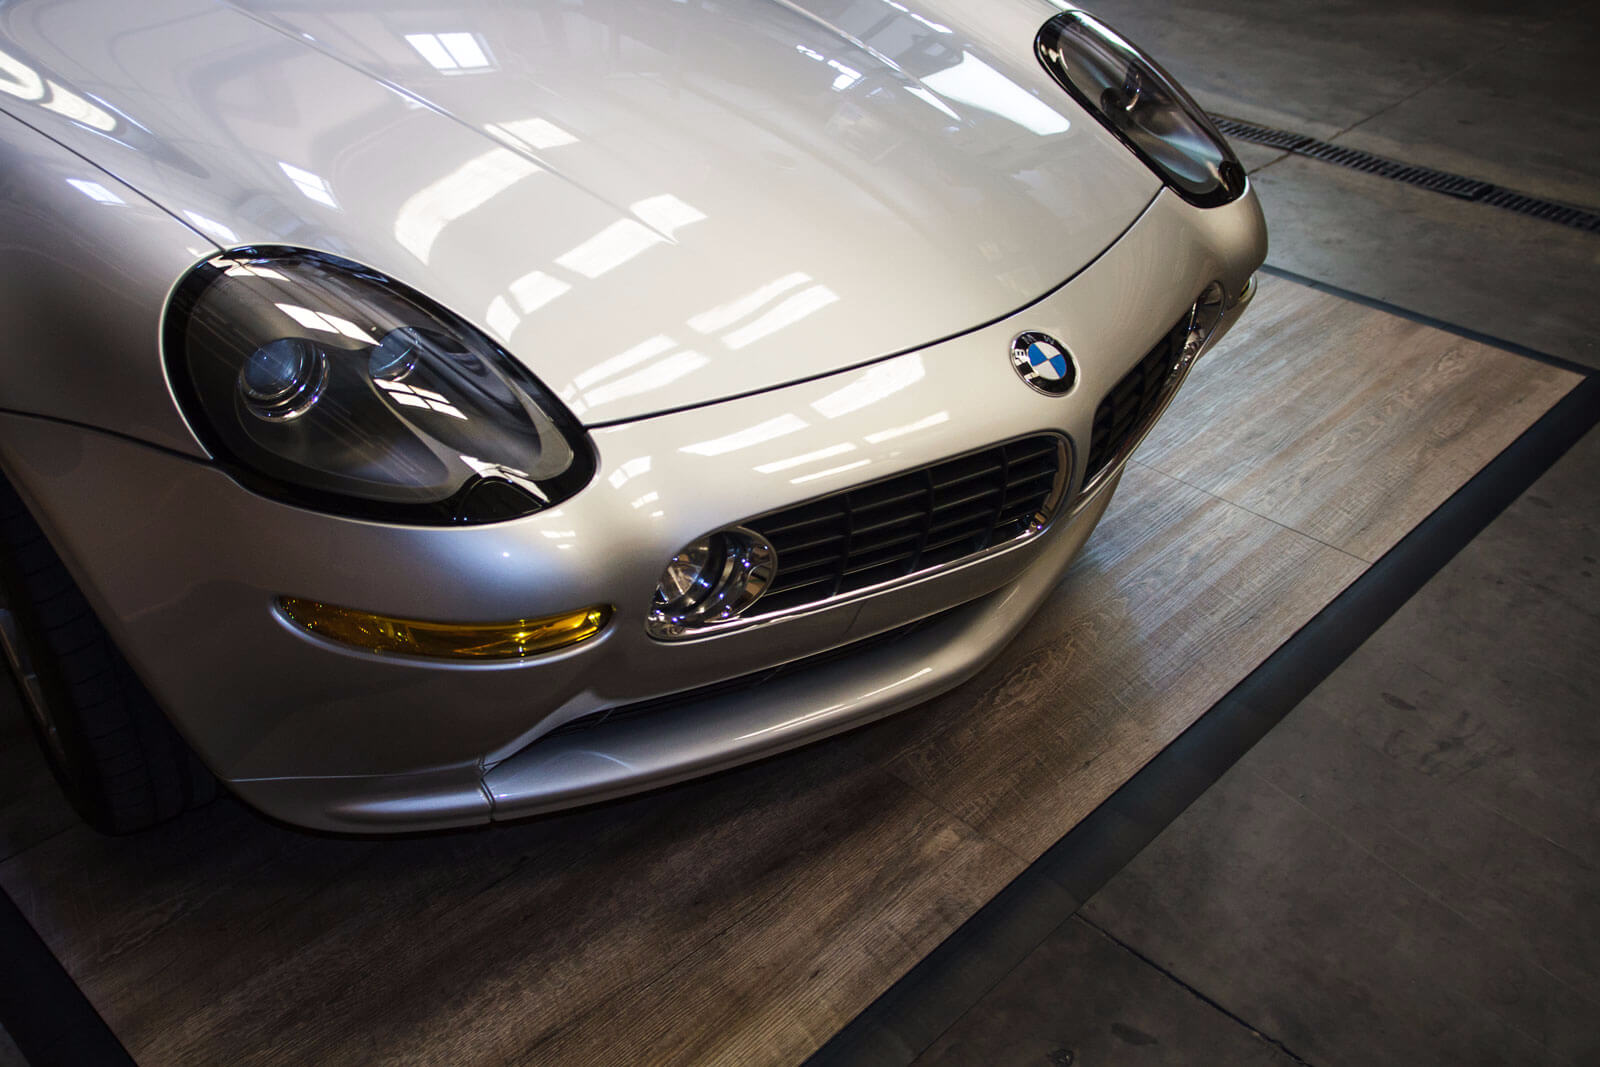 A close up of RaceDeck's Smoked Oak with a BMW displayed on it.